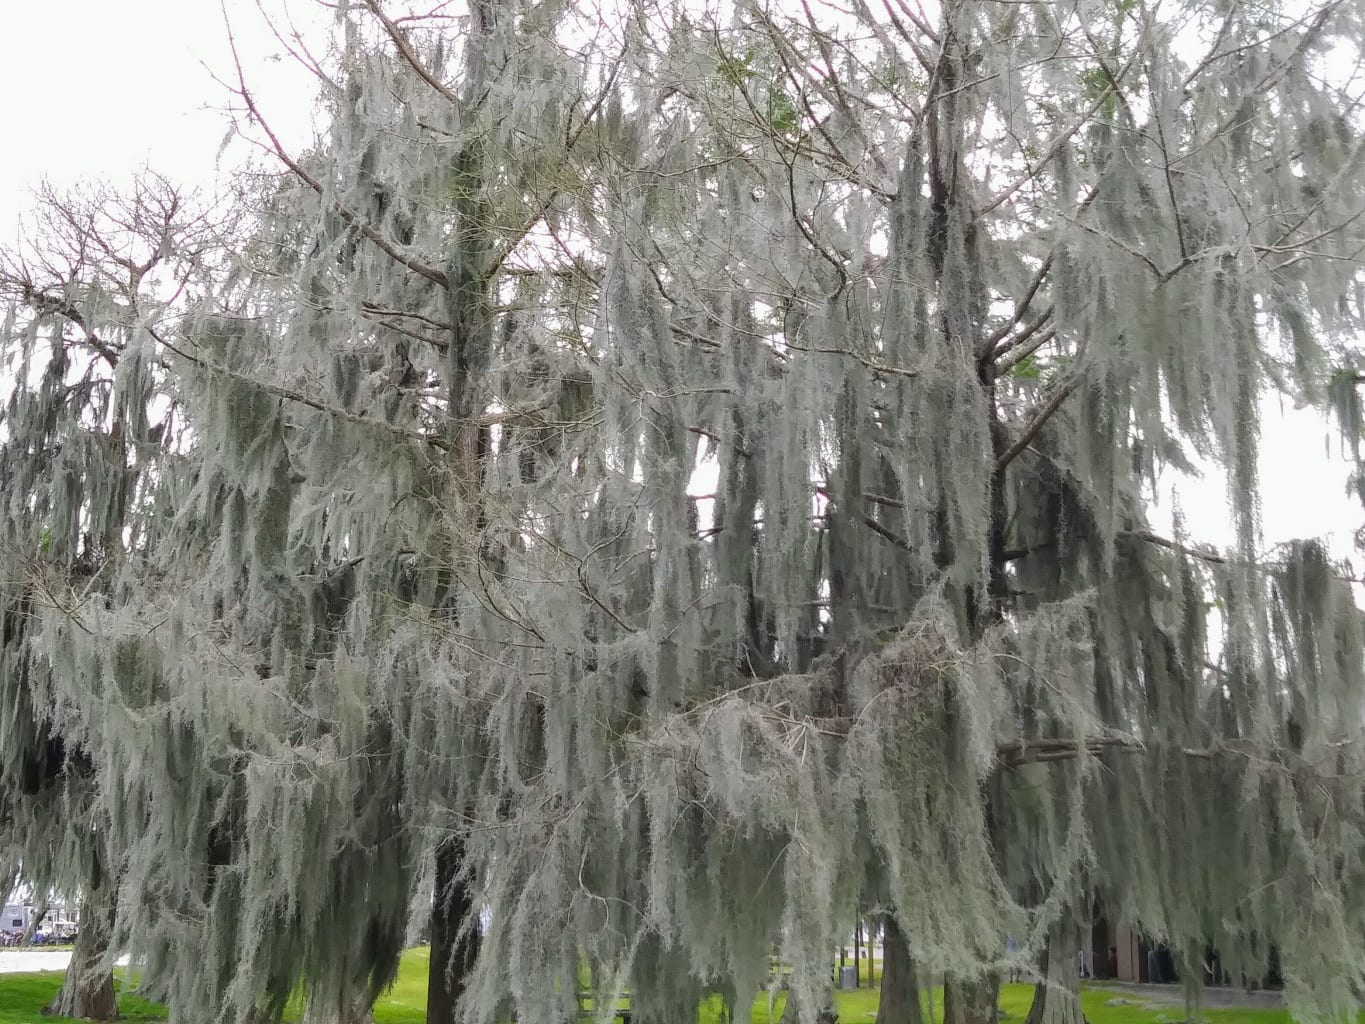 Trees heavy with Spanish moss